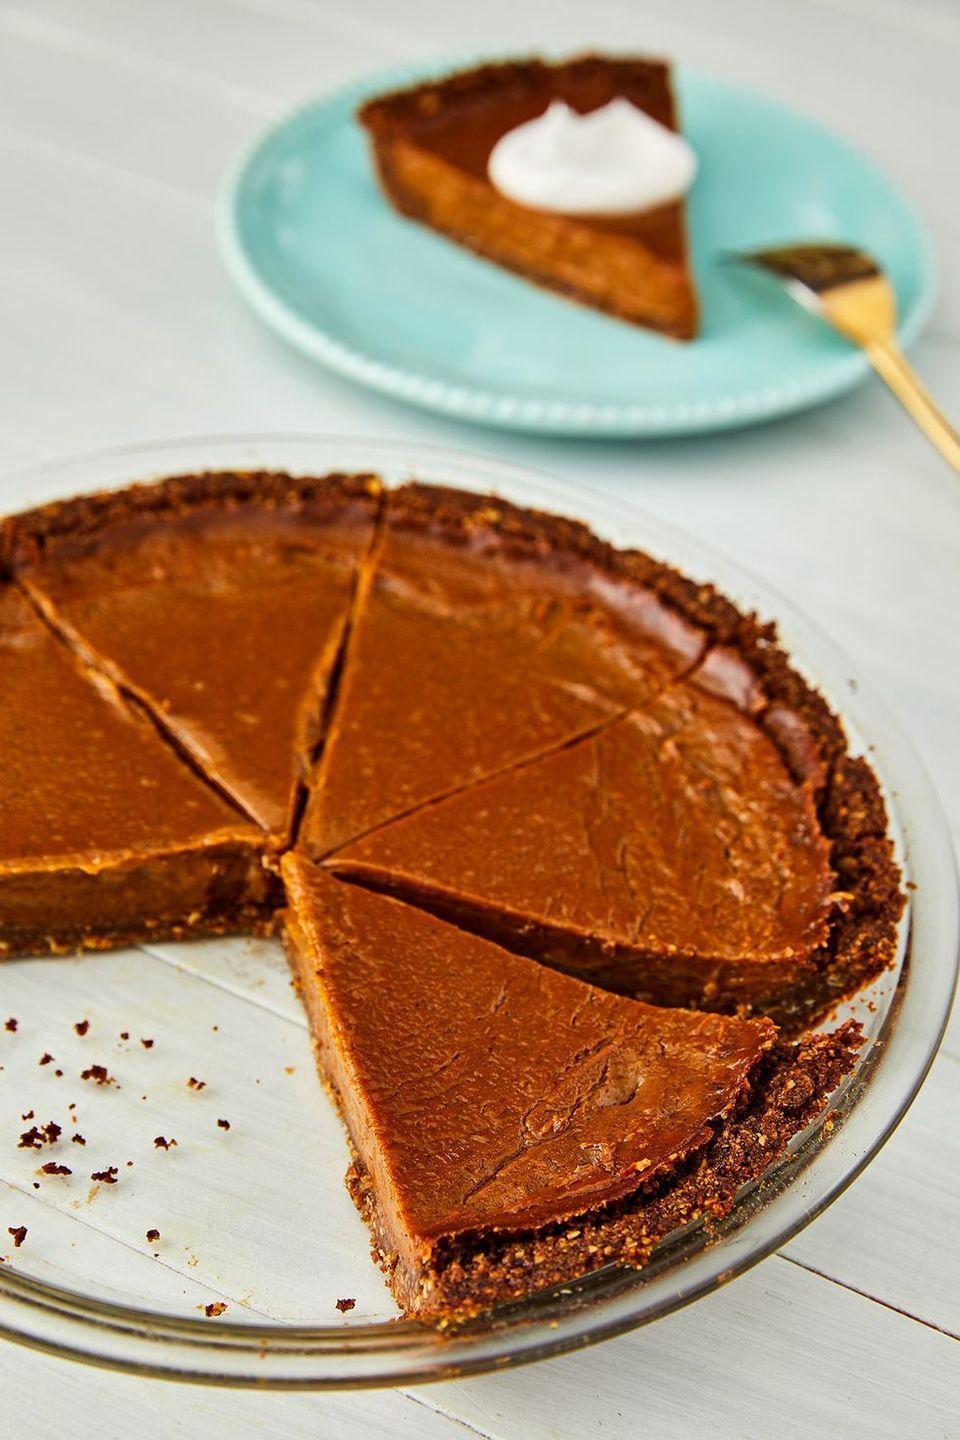 "<p>A tried-and-true Thanksgiving classic, this scrumptious <a href=""https://www.goodhousekeeping.com/holidays/thanksgiving-ideas/g4721/sweet-potato-pie/"" rel=""nofollow noopener"" target=""_blank"" data-ylk=""slk:sweet potato pie"" class=""link rapid-noclick-resp"">sweet potato pie</a> is so good that your guests won't even notice that it's vegan. </p><p><em><a href=""https://www.delish.com/holiday-recipes/thanksgiving/a22655817/easy-vegan-sweet-potato-pie-recipe/"" rel=""nofollow noopener"" target=""_blank"" data-ylk=""slk:Get the recipe at Delish »"" class=""link rapid-noclick-resp"">Get the recipe at Delish »</a></em></p>"